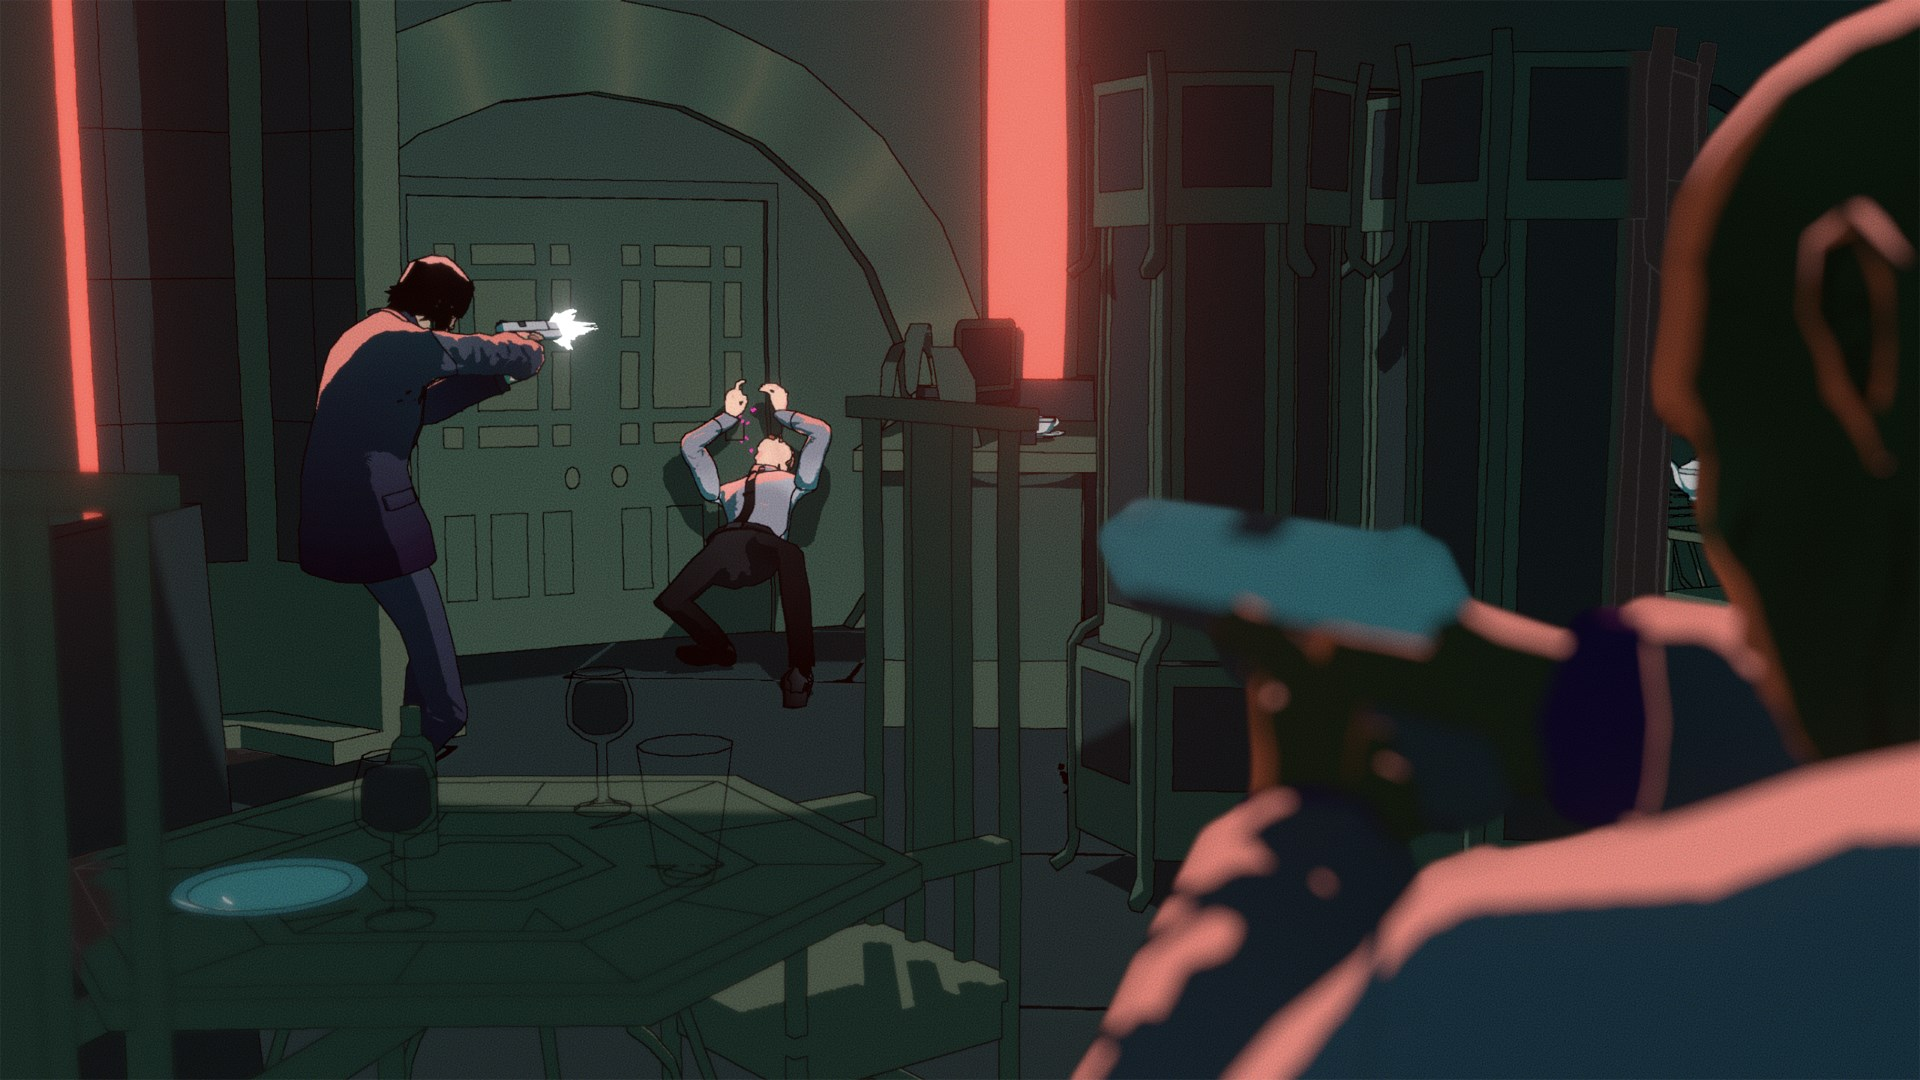 A turn-based John Wick game is coming